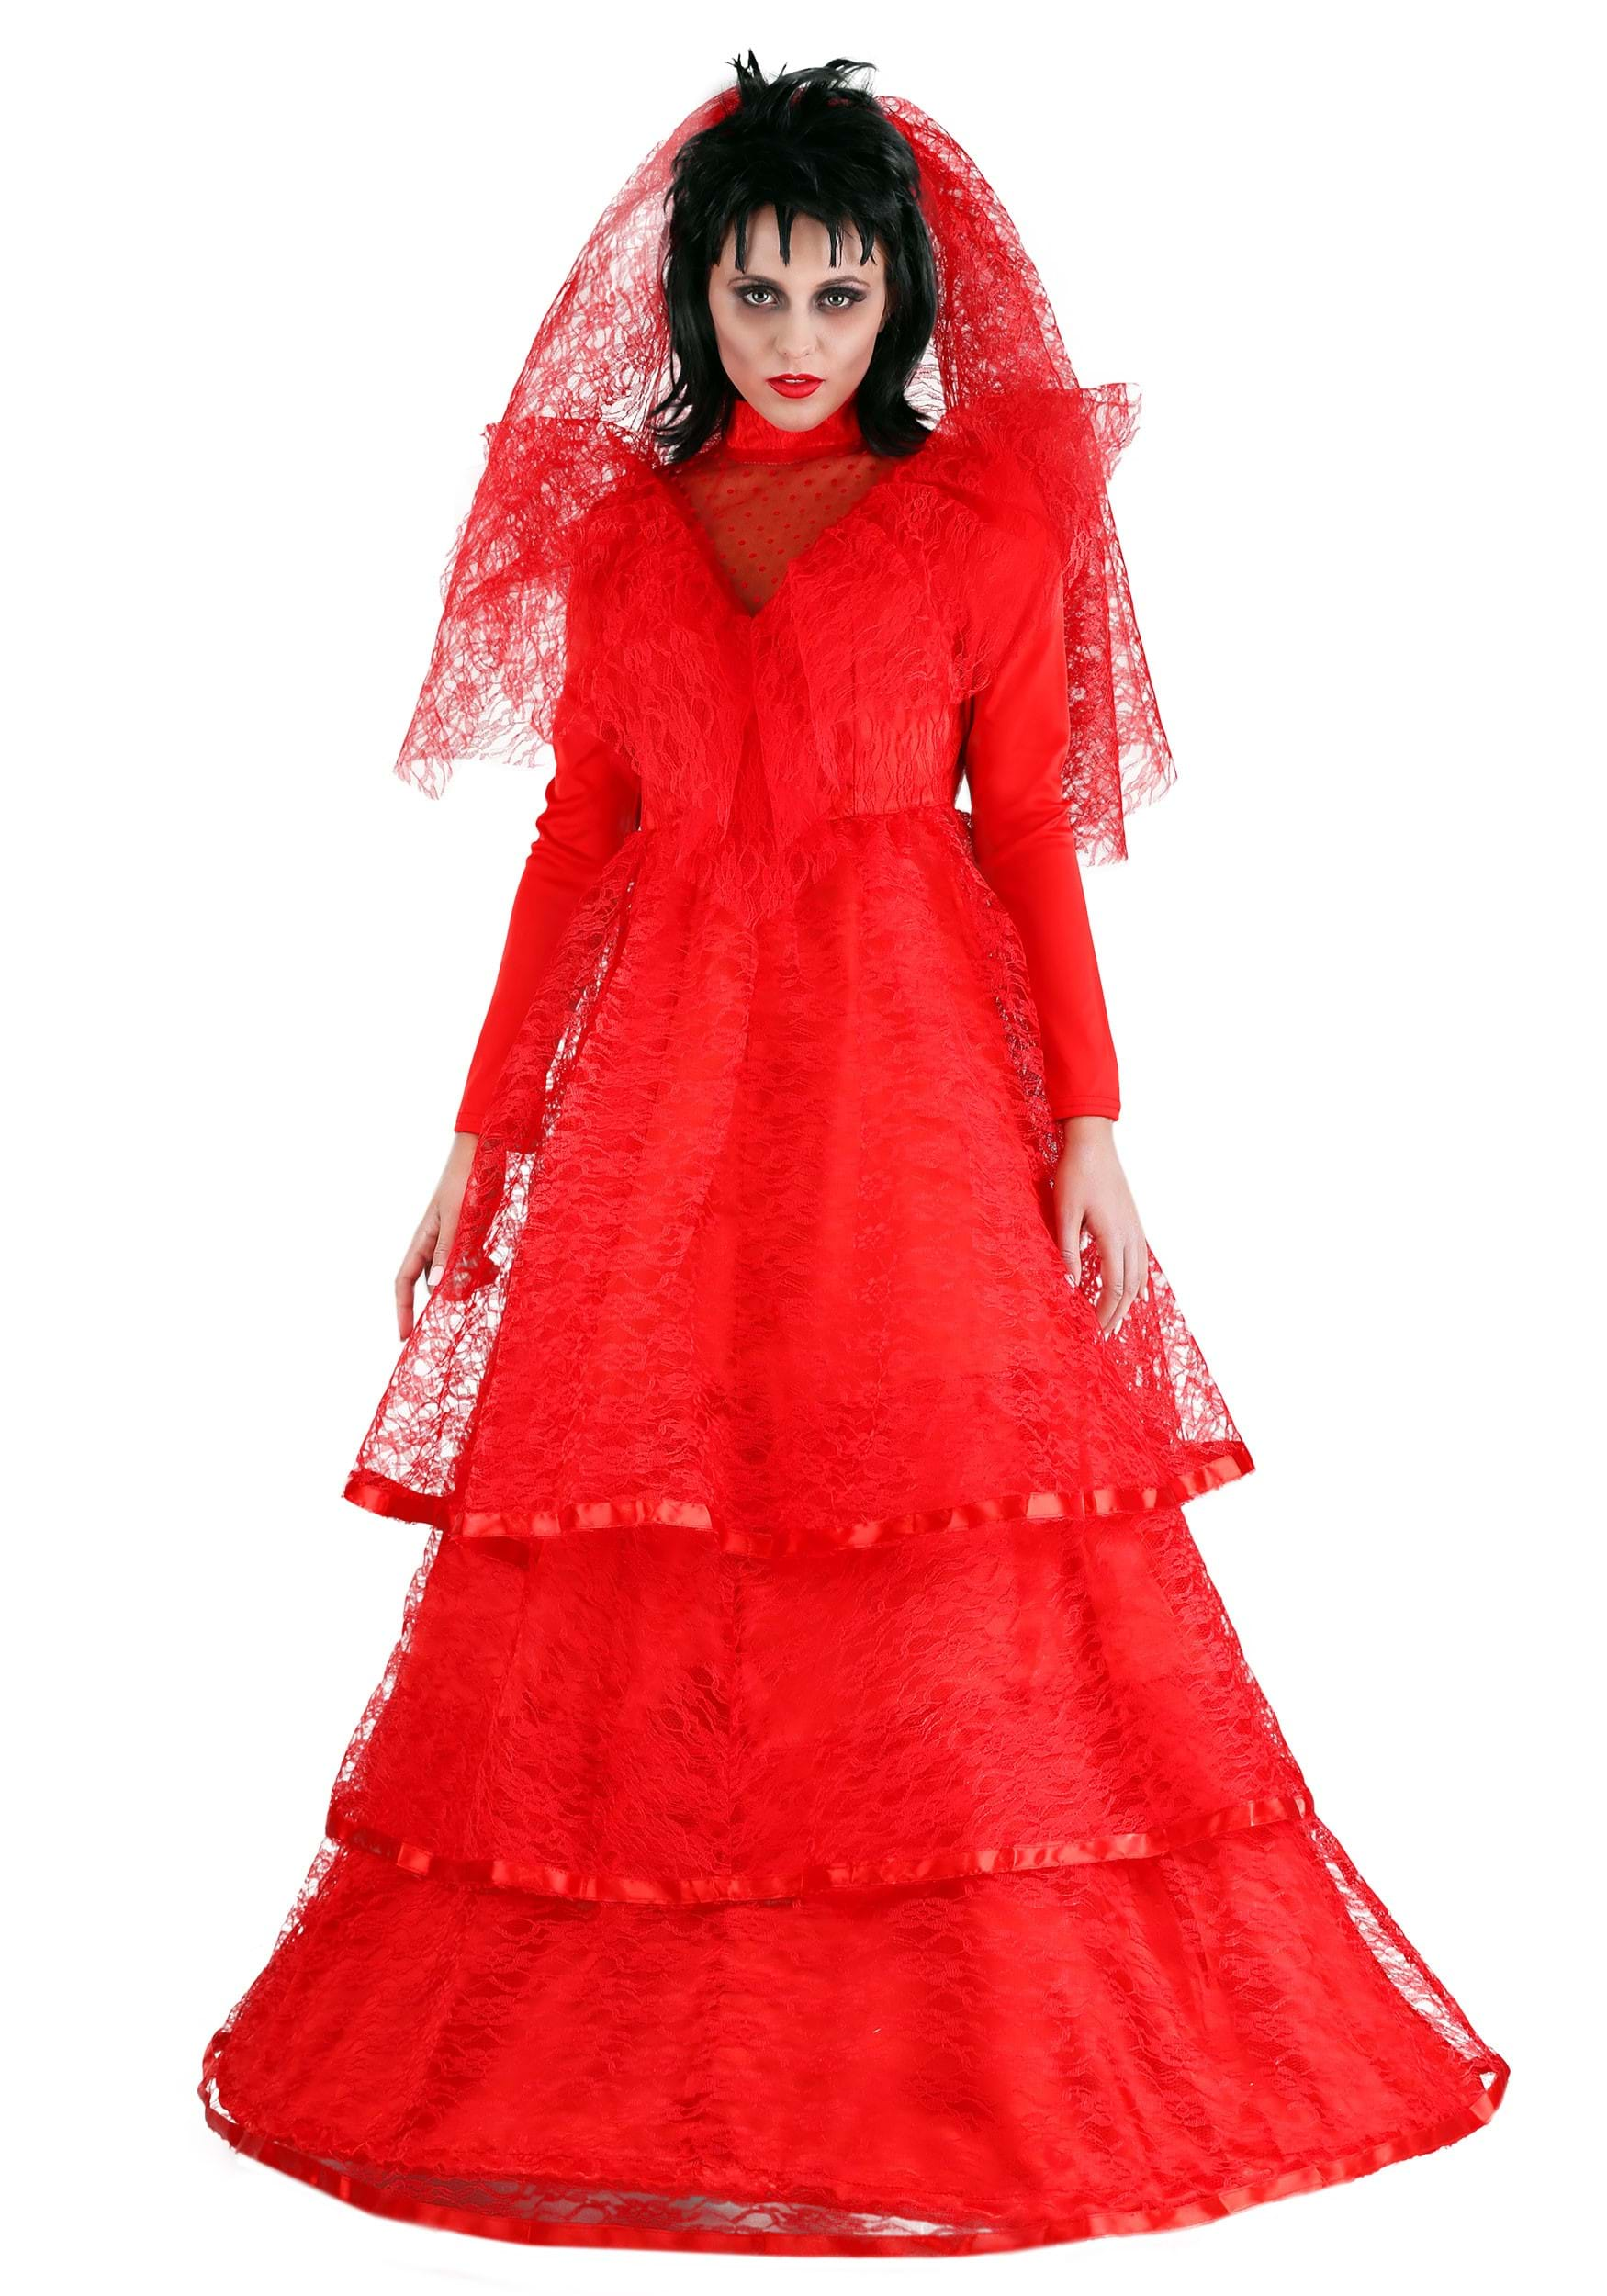 Red gothic wedding dress costume for Sexy wedding dress costume